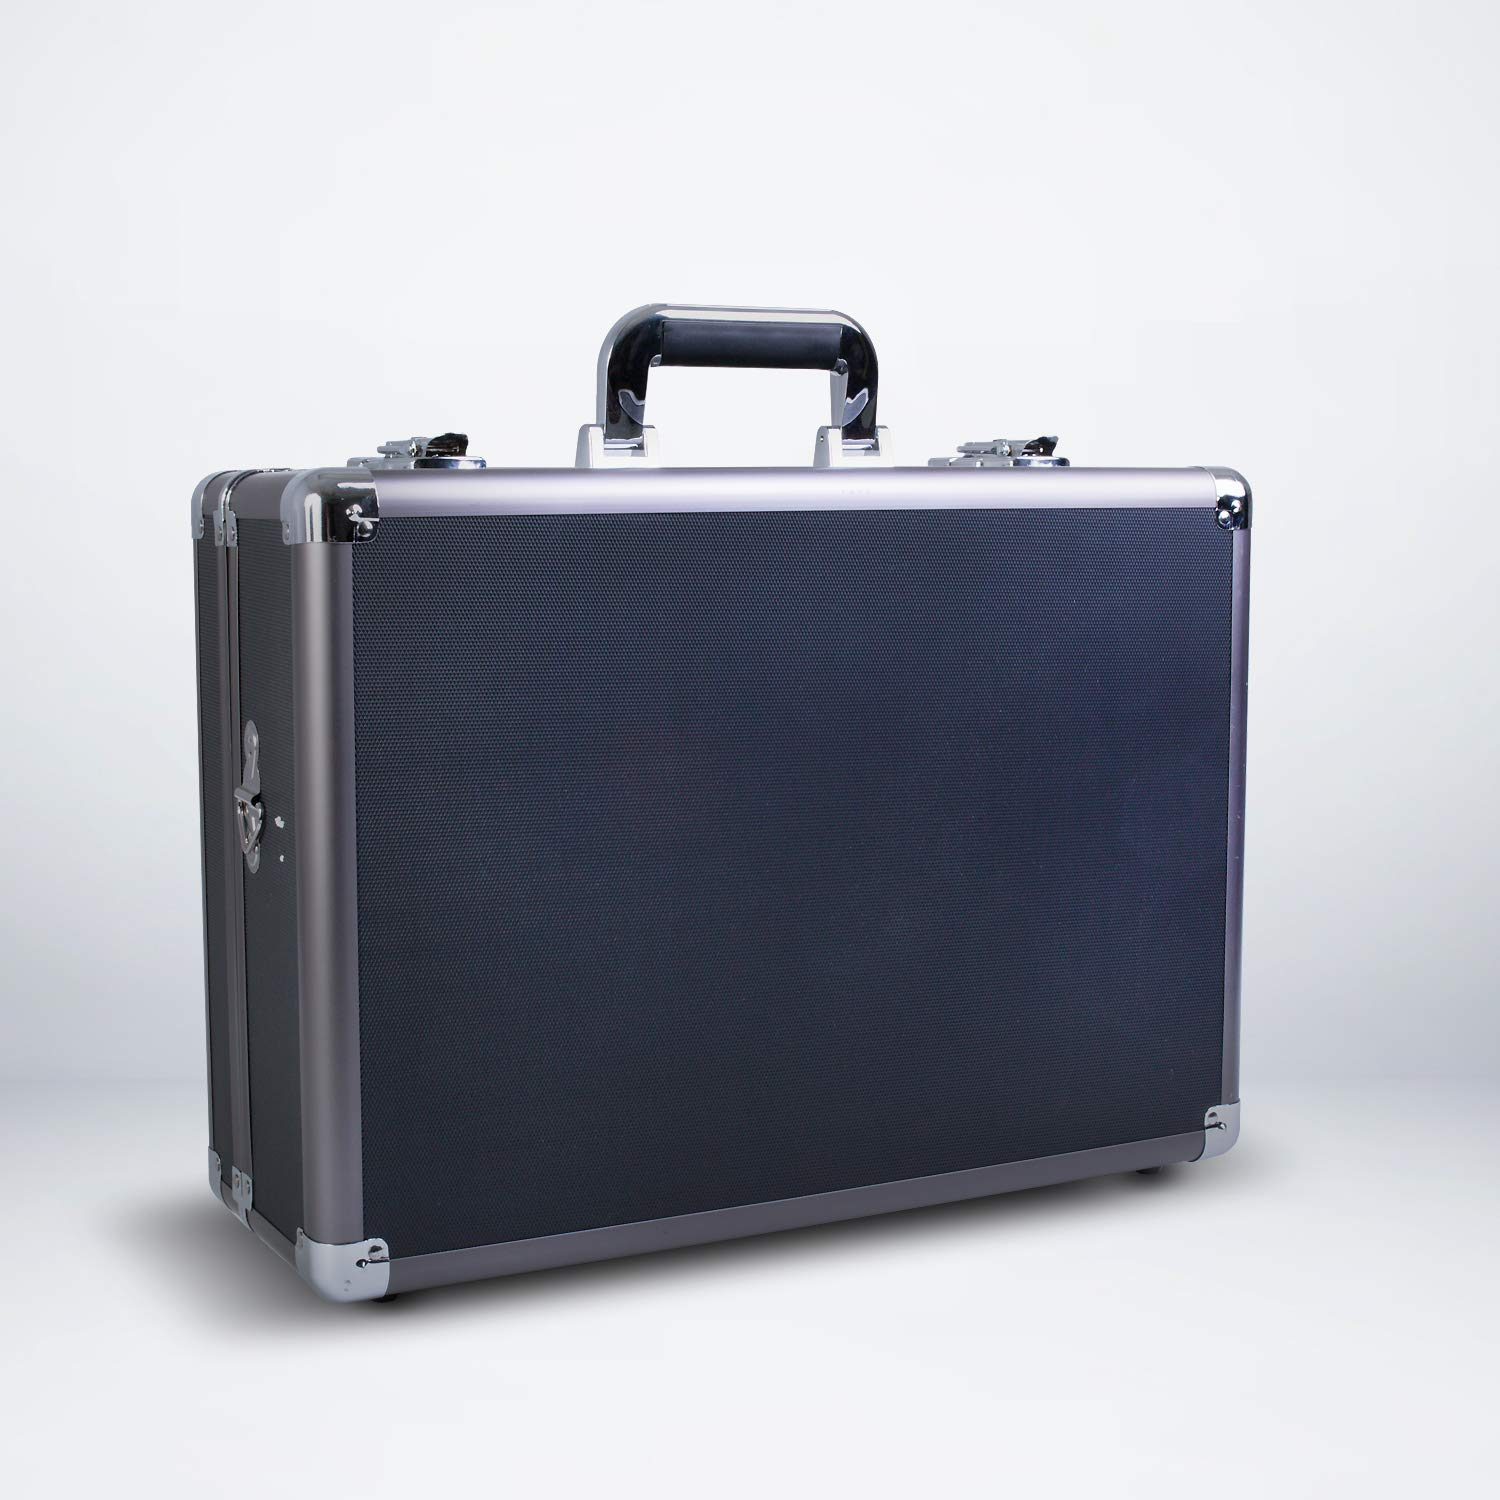 Zeikos ZE-HC36 Deluxe Medium Hard Shell Case With Extra Padding Foam For Cameras - Travel, and Storage Case Camera, Gear, Equipment, and Lenses - Canon, Nikon, Sony Alpha and Many More DSLR Cameras